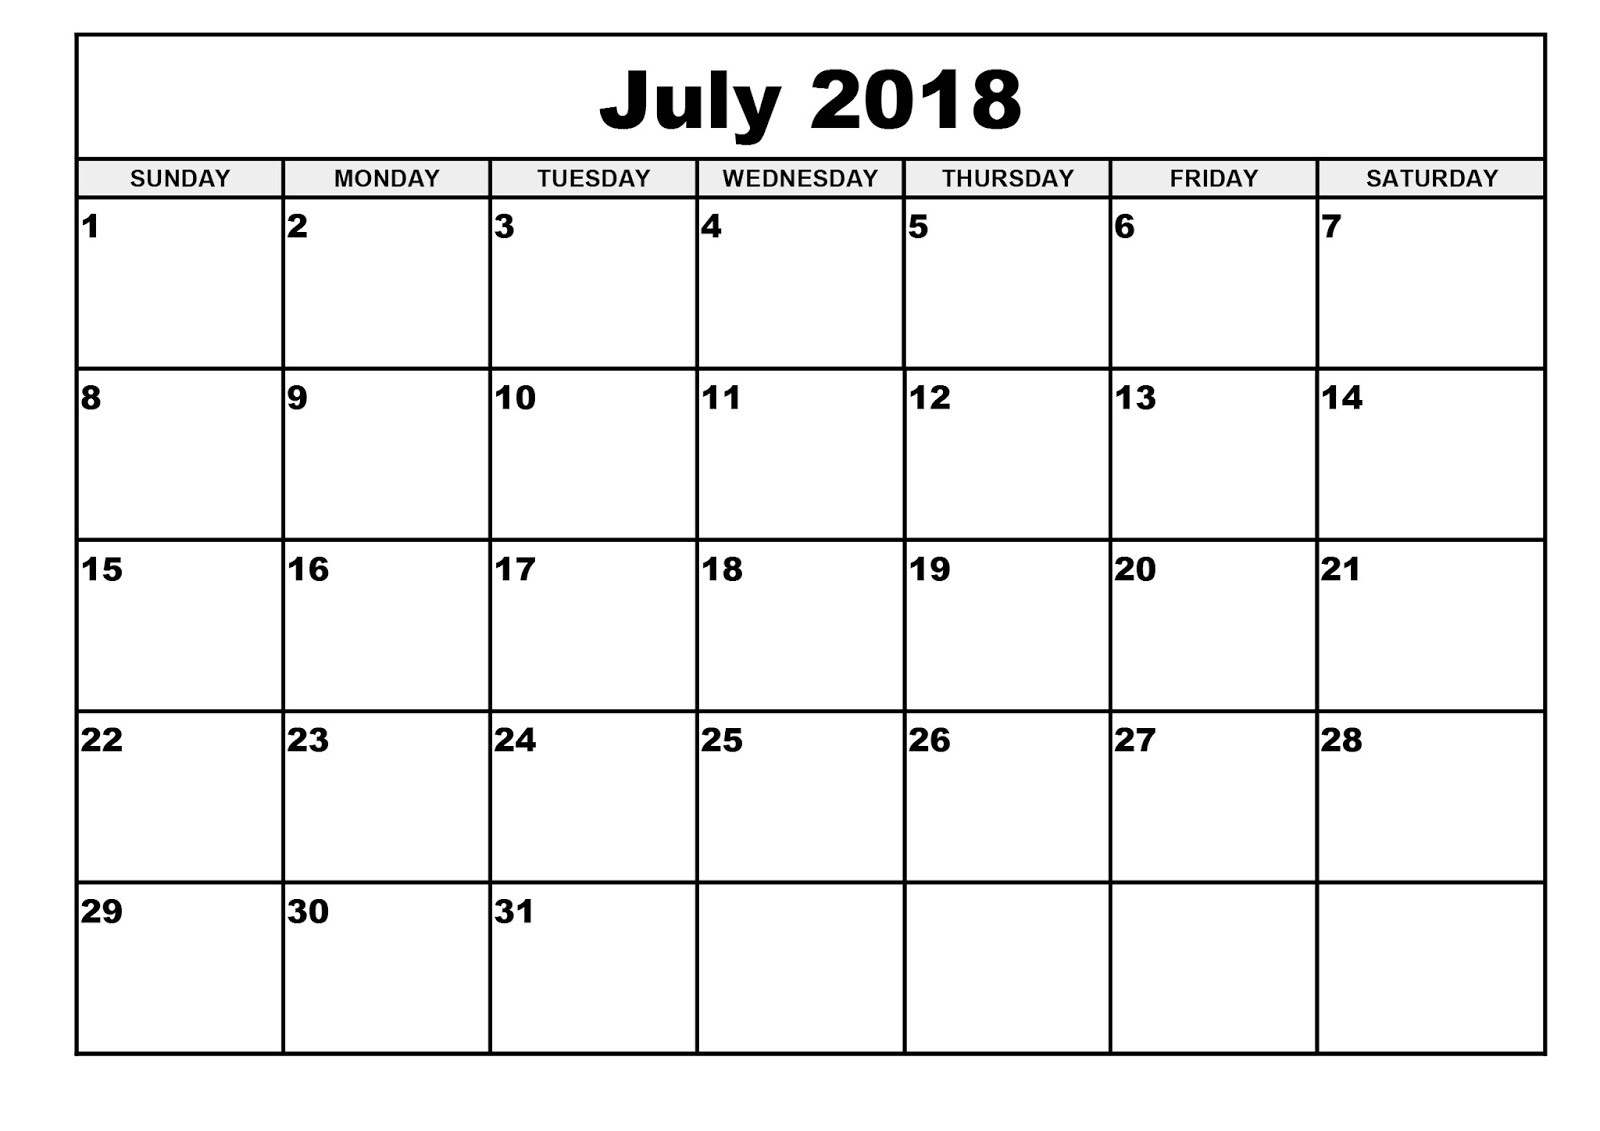 Free July 2018 Calendar Printable Blank Templates - Word Pdf for Printable 2020 Calendar I Can Edit